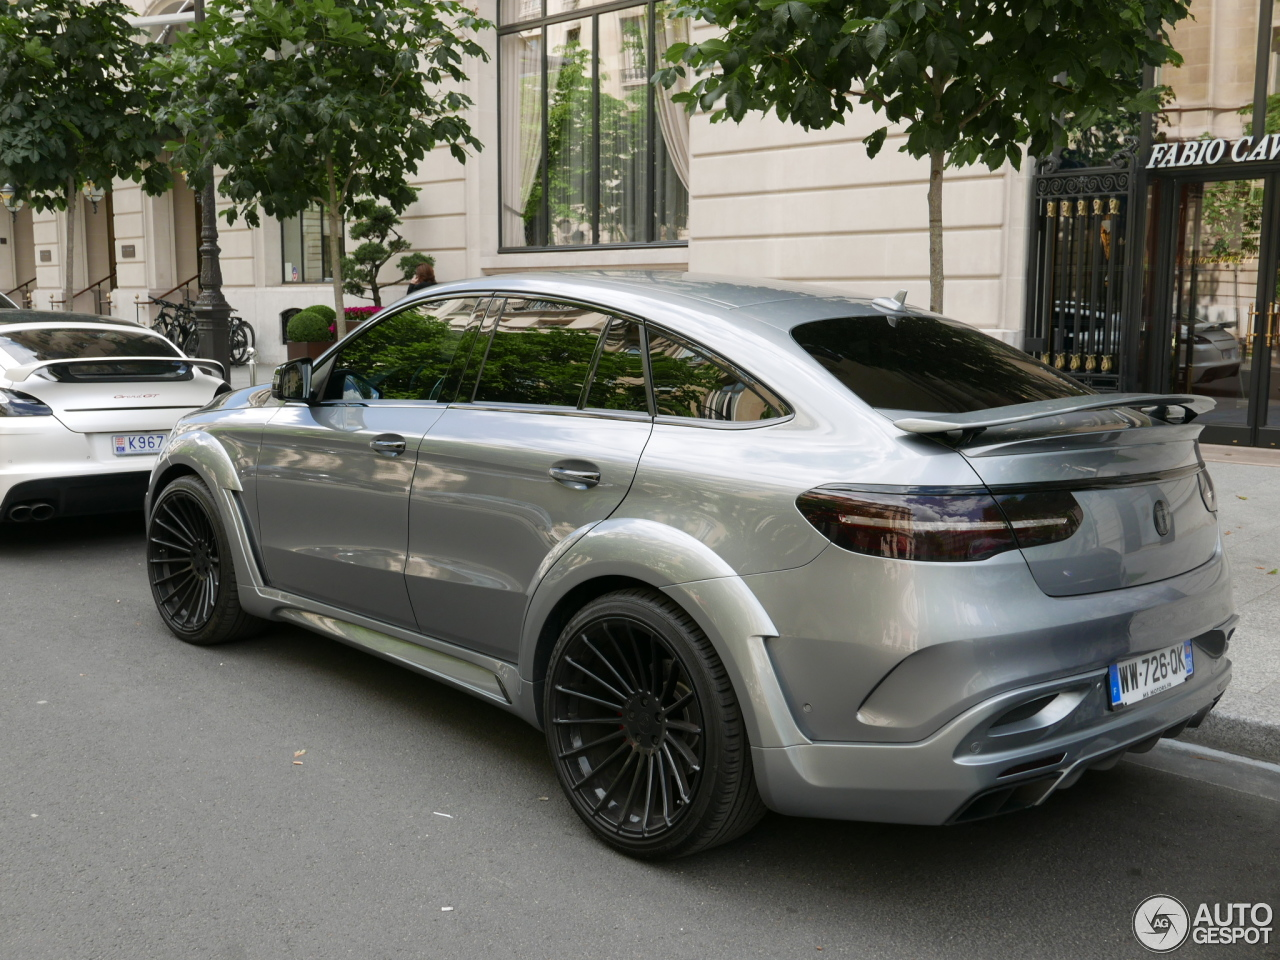 mercedes amg gle 63 s coup c292 hamann widebody 5 juin 2017 autogespot. Black Bedroom Furniture Sets. Home Design Ideas